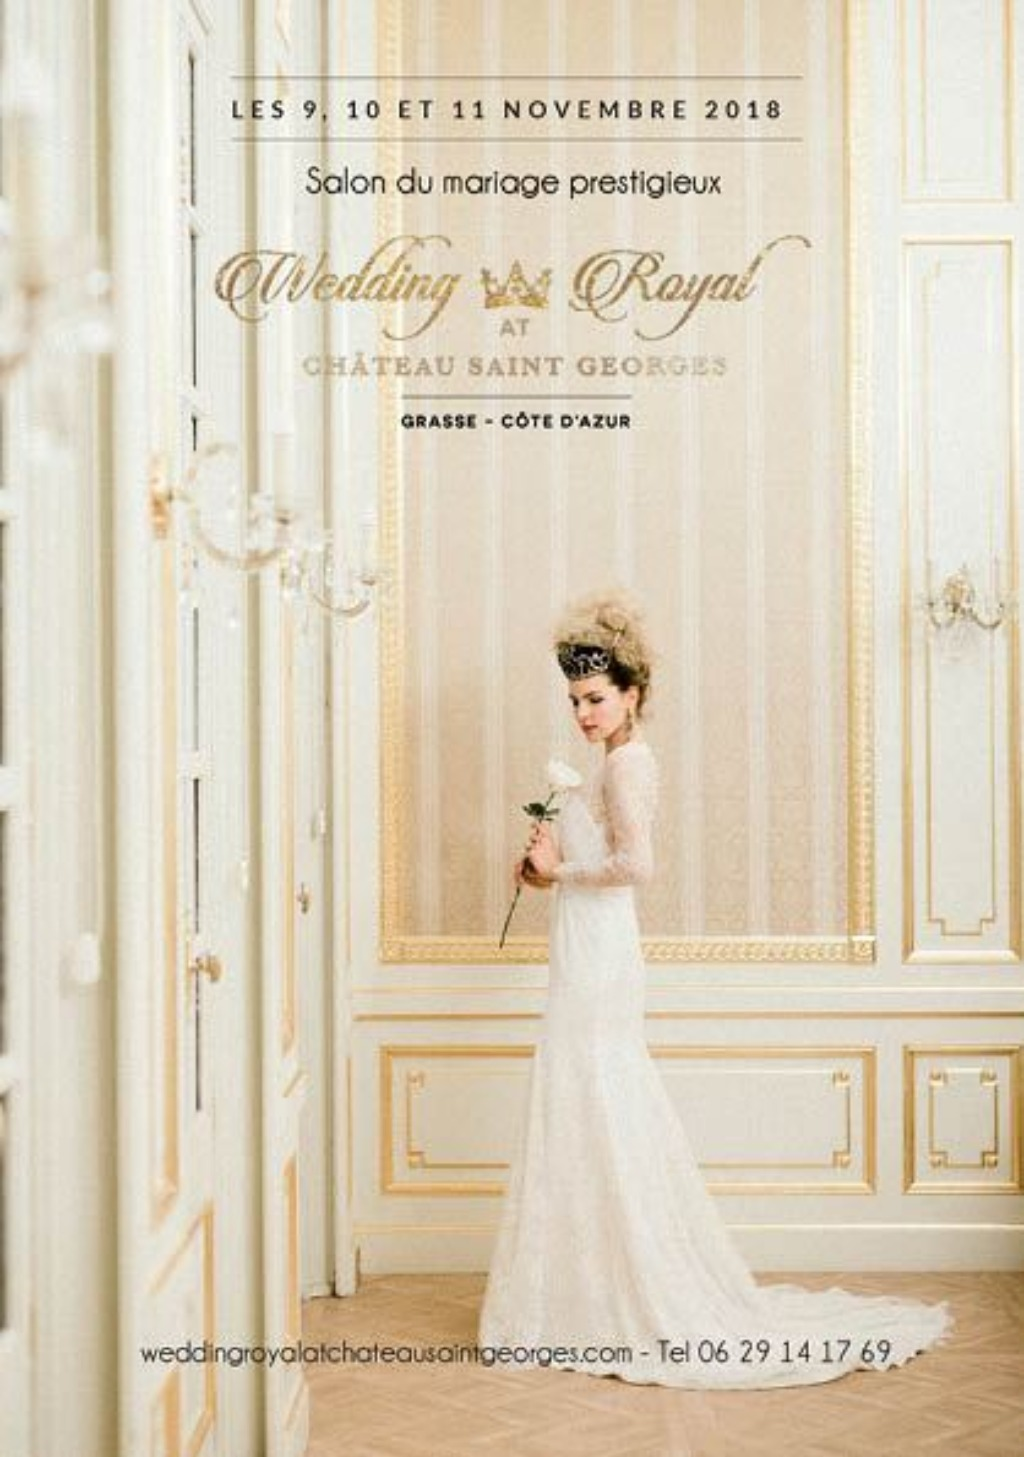 Wedding Royal at Chateau Saint Georges